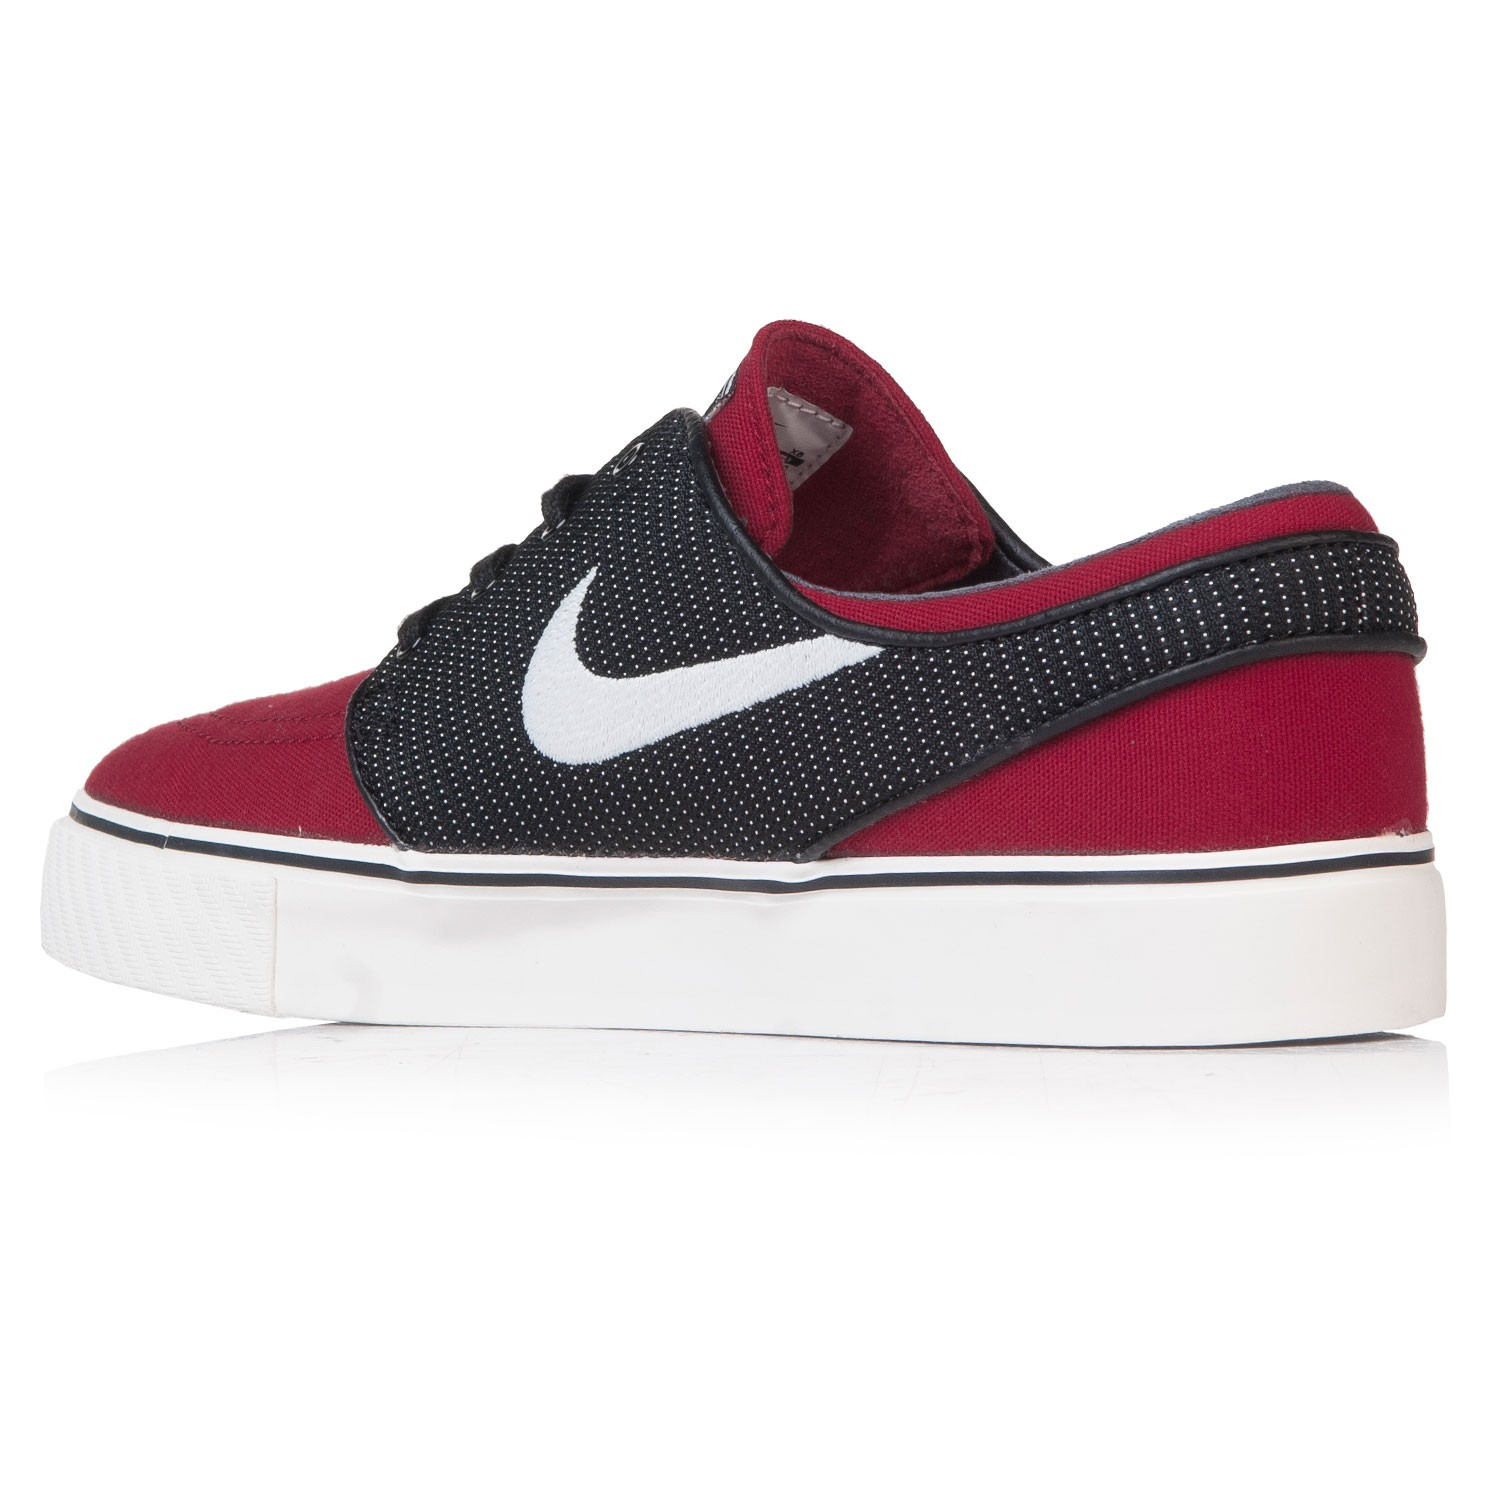 Red And Black Nike Skate Shoes